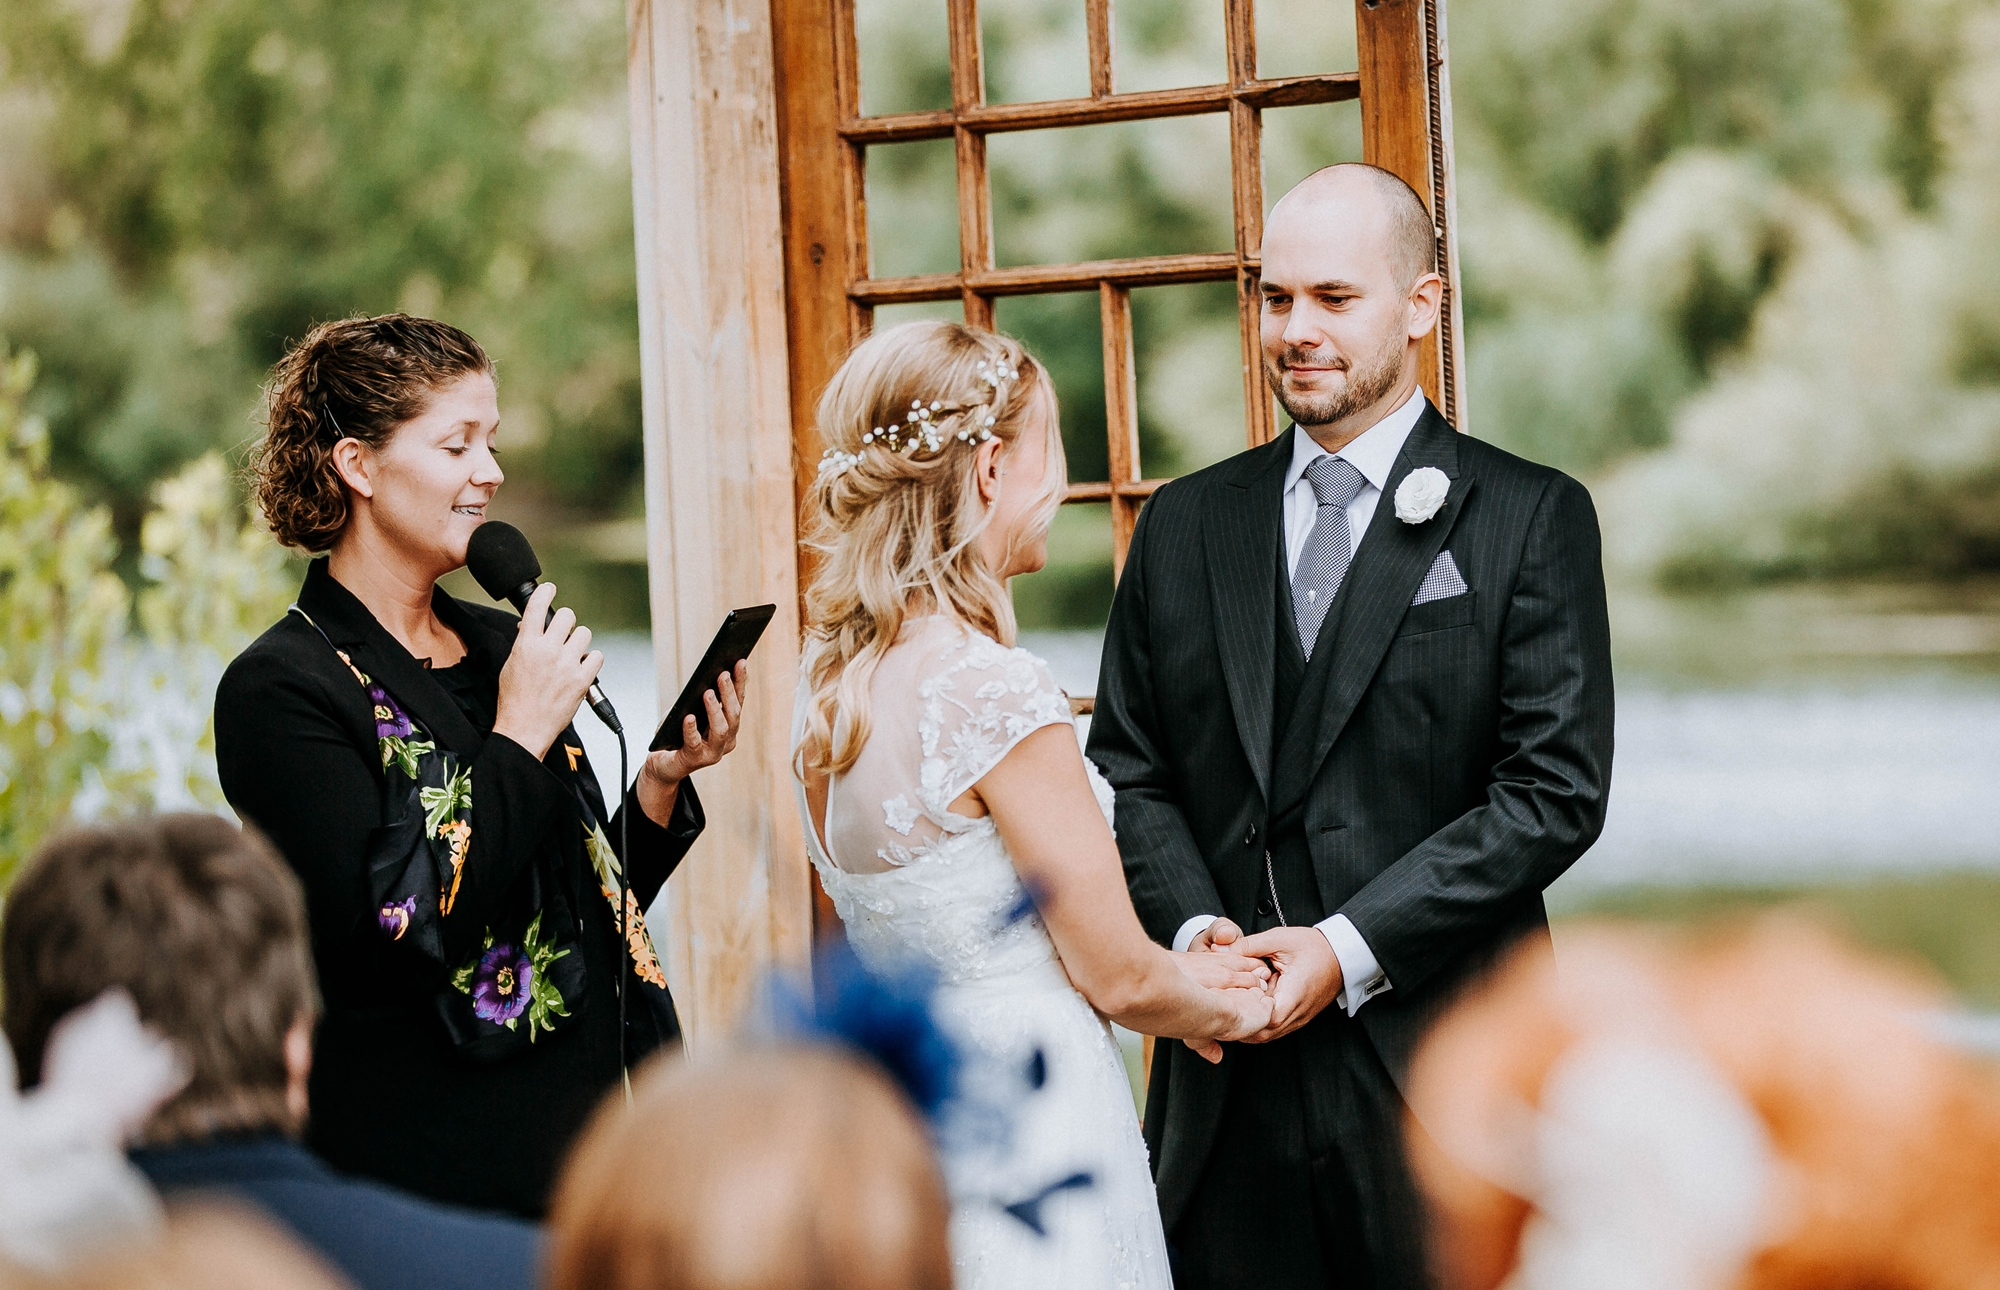 Couple stands in front of the Torres Vedras wedding officiant, bride in a white dress with her back to the camera and the groom, with his face to the camera, smiling at his bride. In the background is a lake.